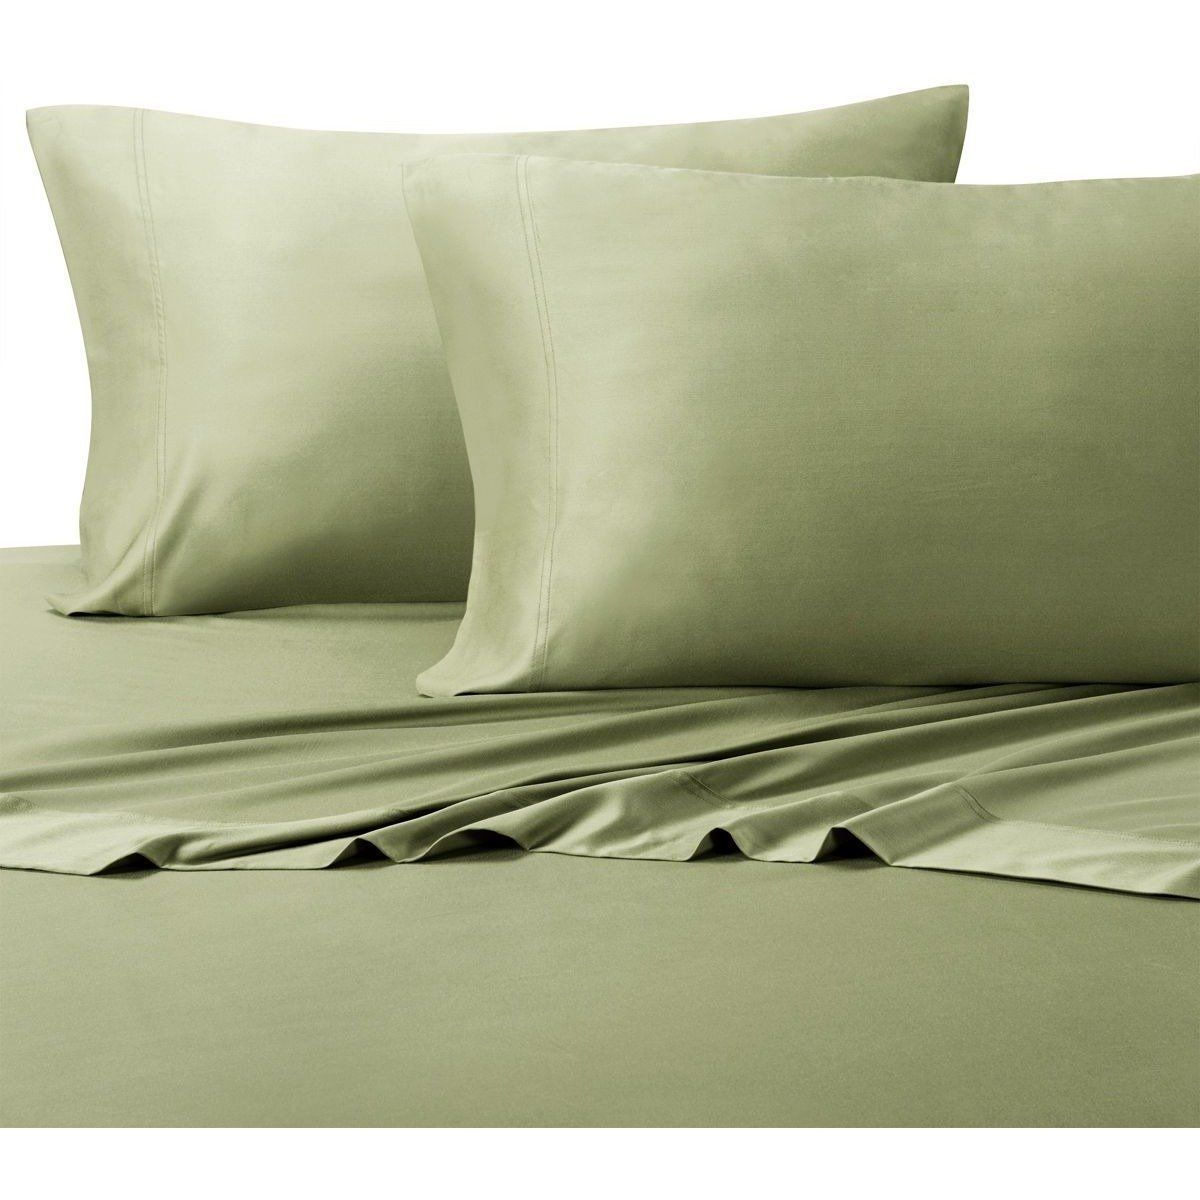 Hybrid Eco Friendly Bamboo Sheets Bed Linens Luxury Striped Bed